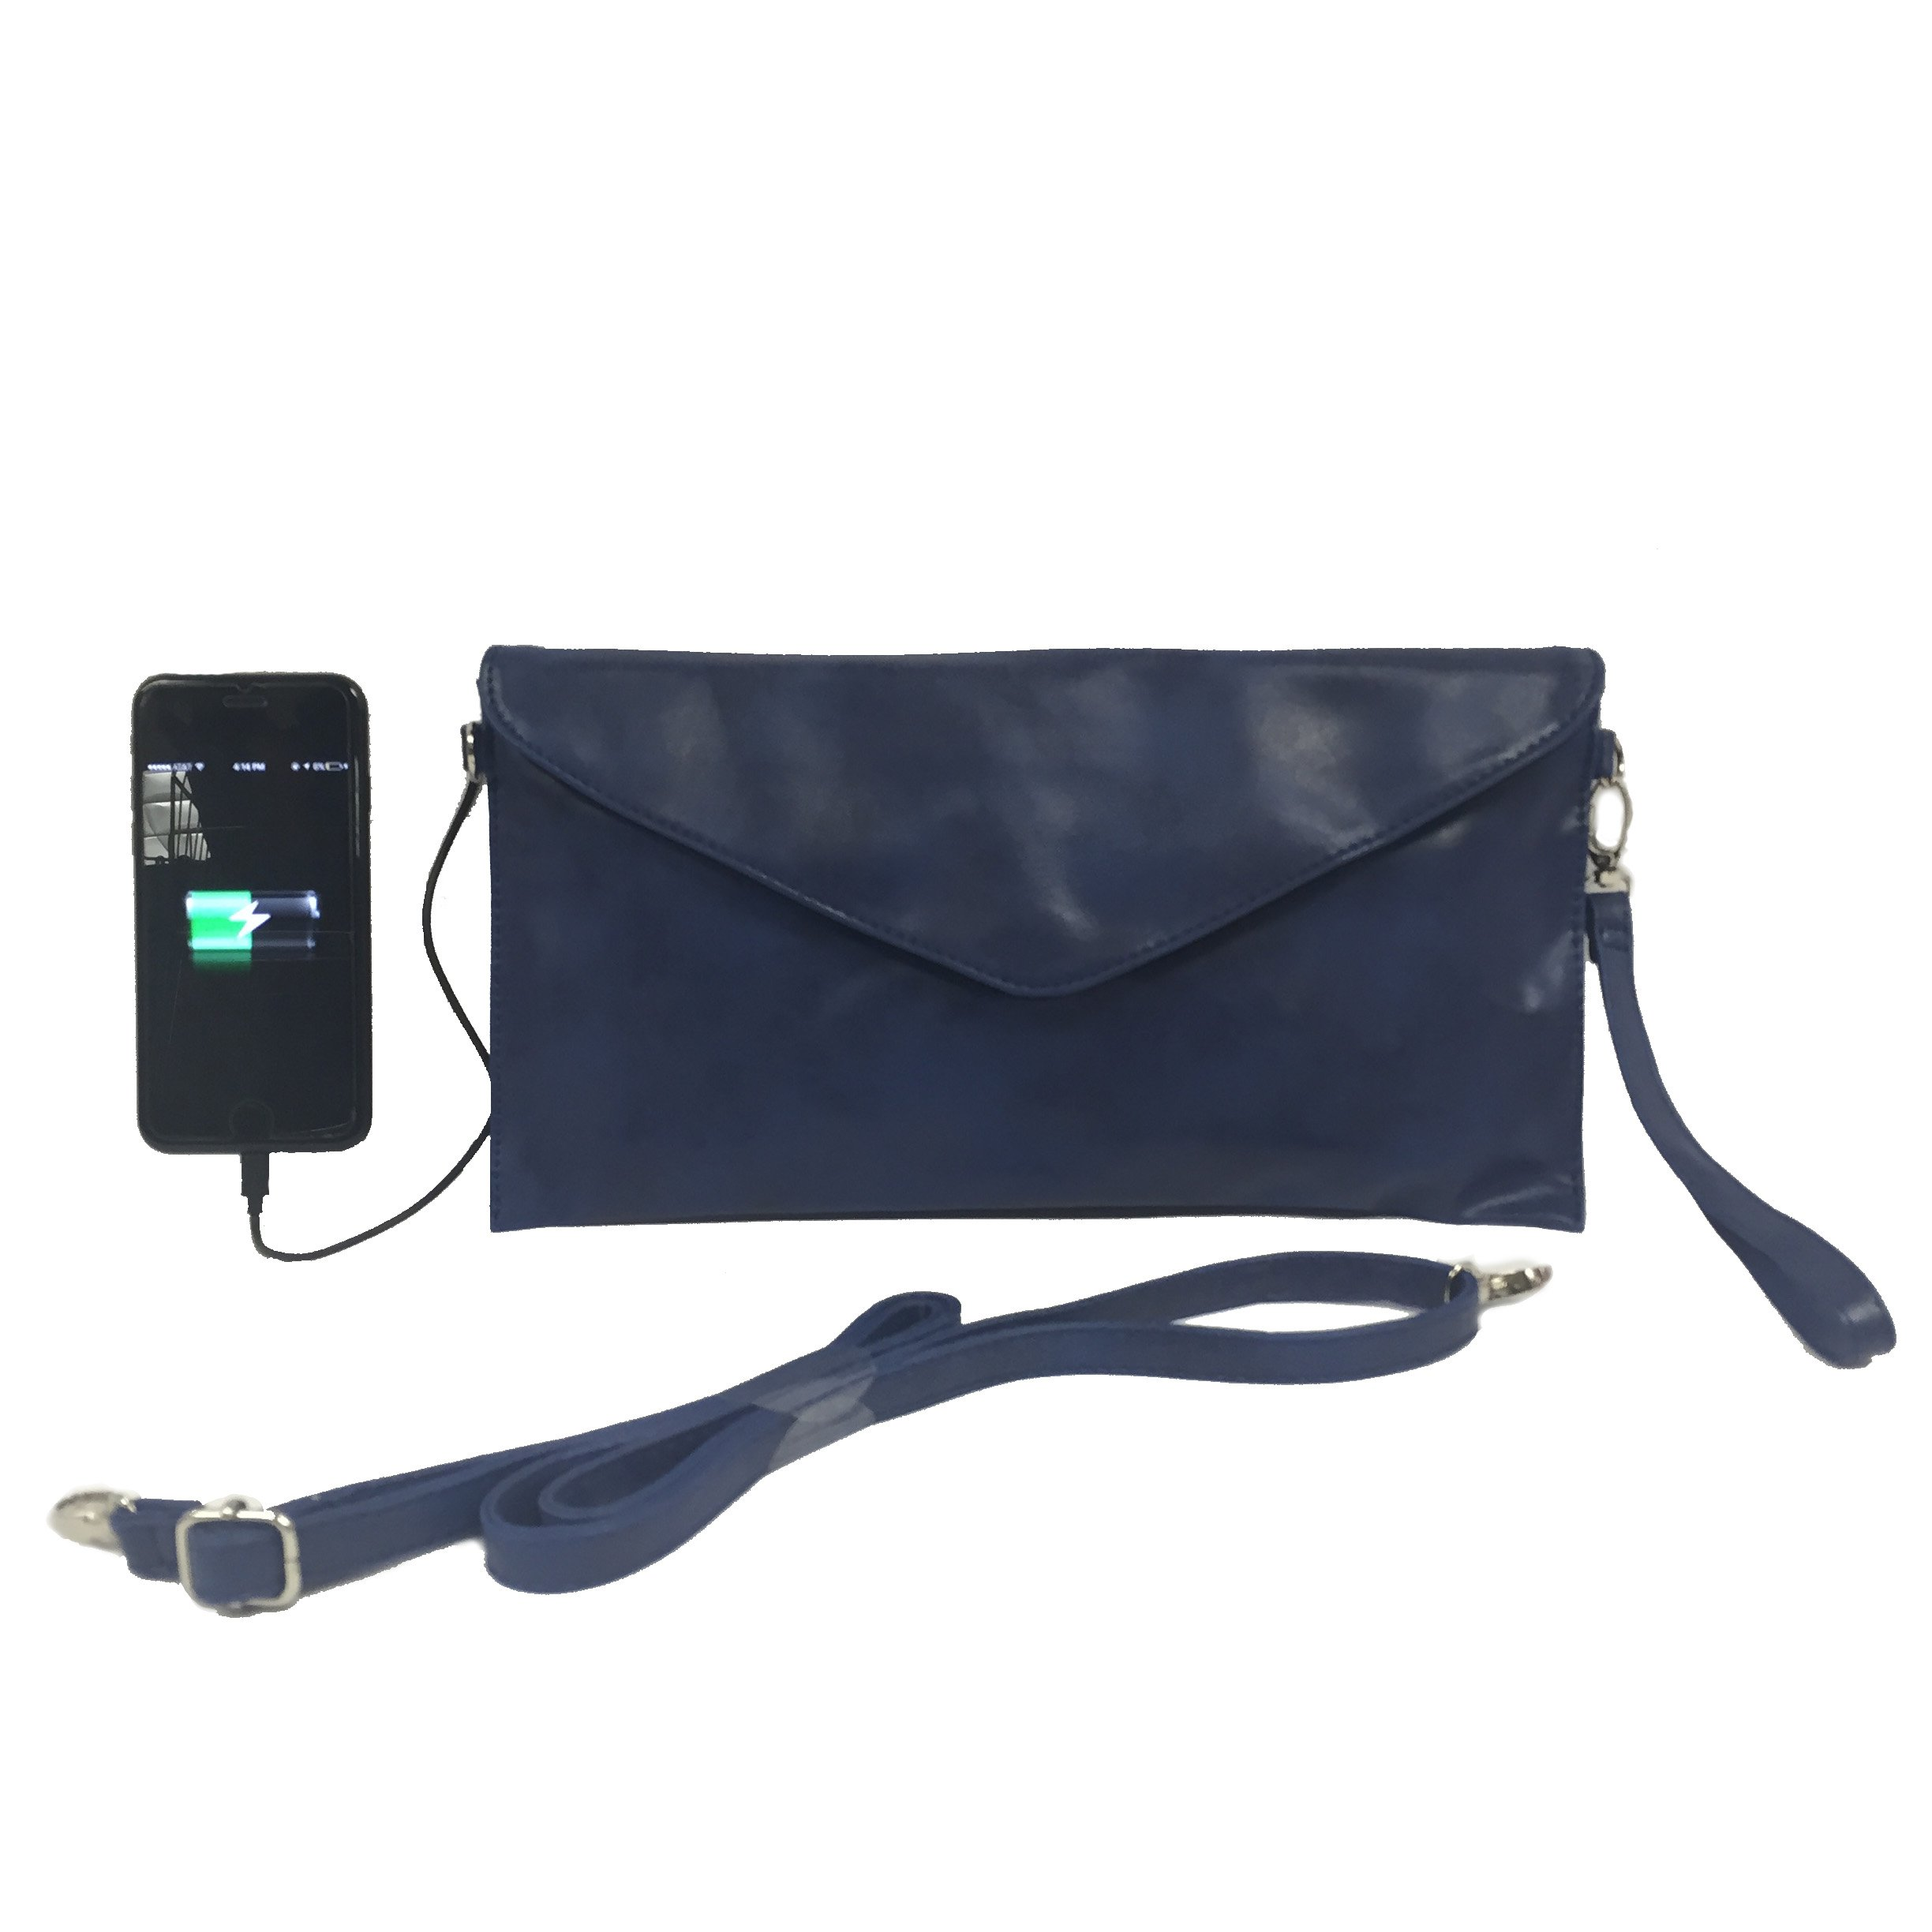 Womens Envelope Charging Clutch bag/Wristlet; compatible with all Phones - 2,600mAh Battery will Give your Phone A Full Recharge - Retro Blue